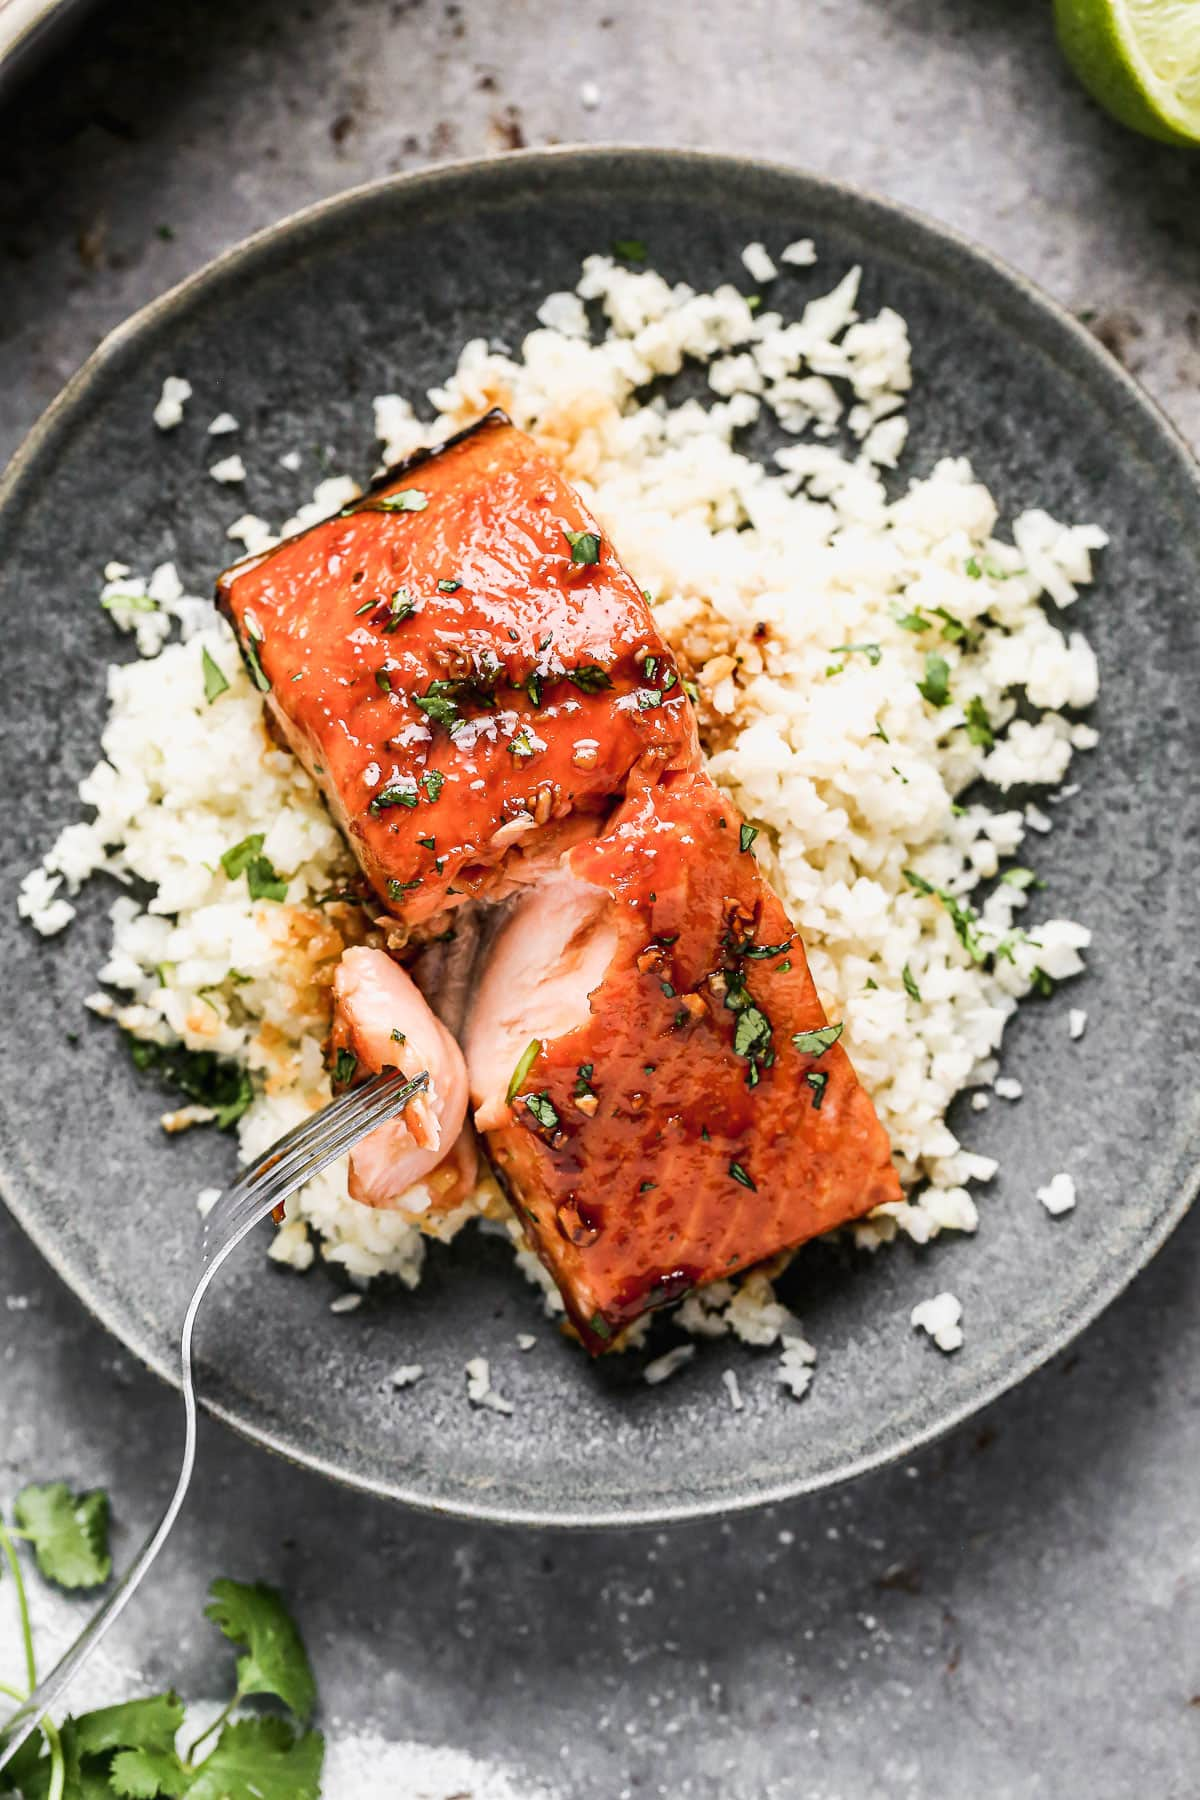 Honey glazed salmon on a plate